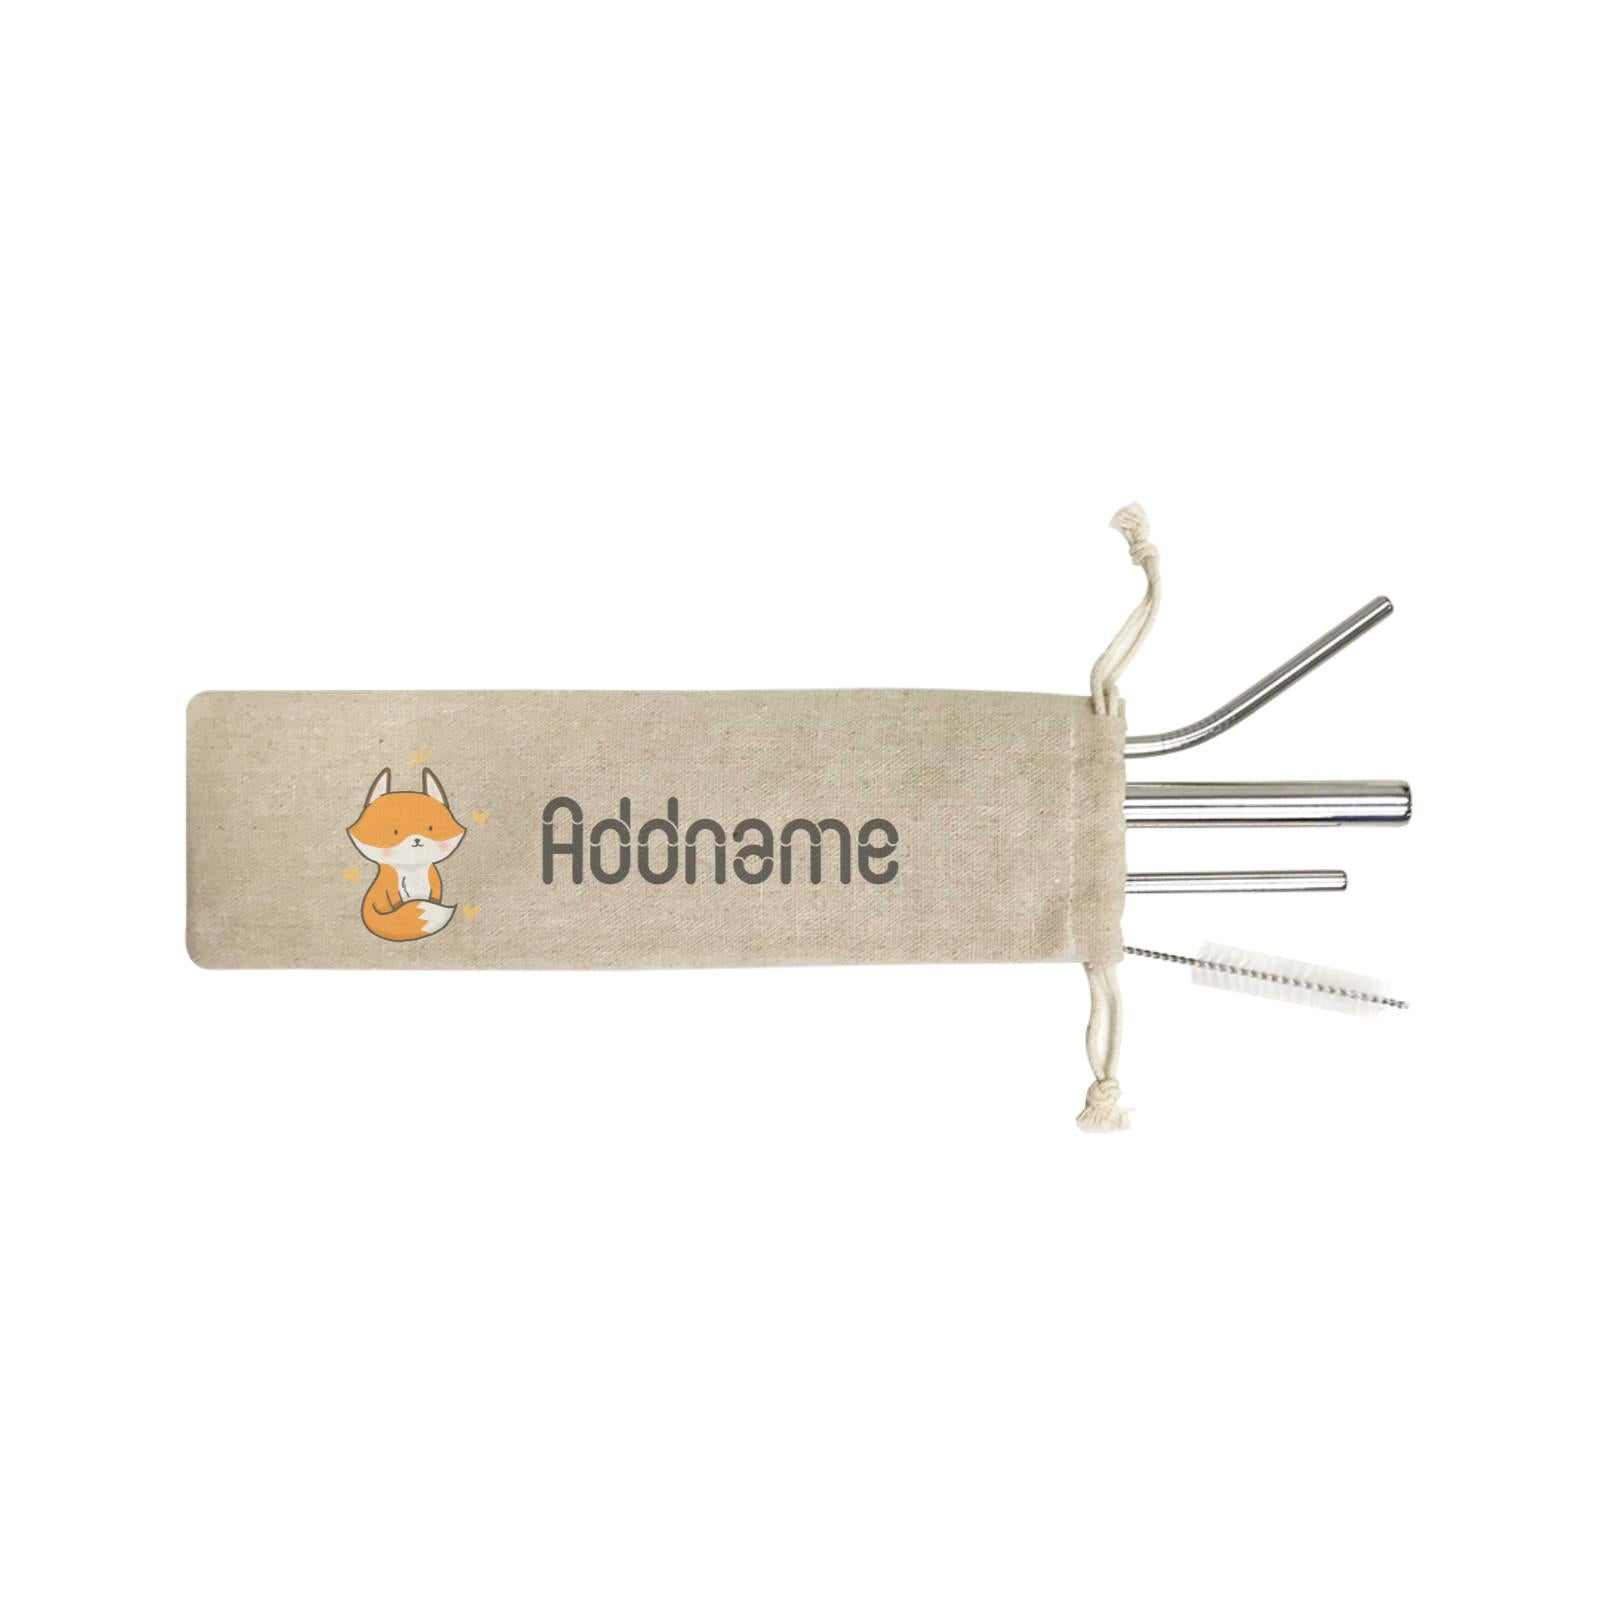 Cute Hand Drawn Style Fox Addname ST SZP 4-In-1 Stainless Steel Straw Set in Satchel